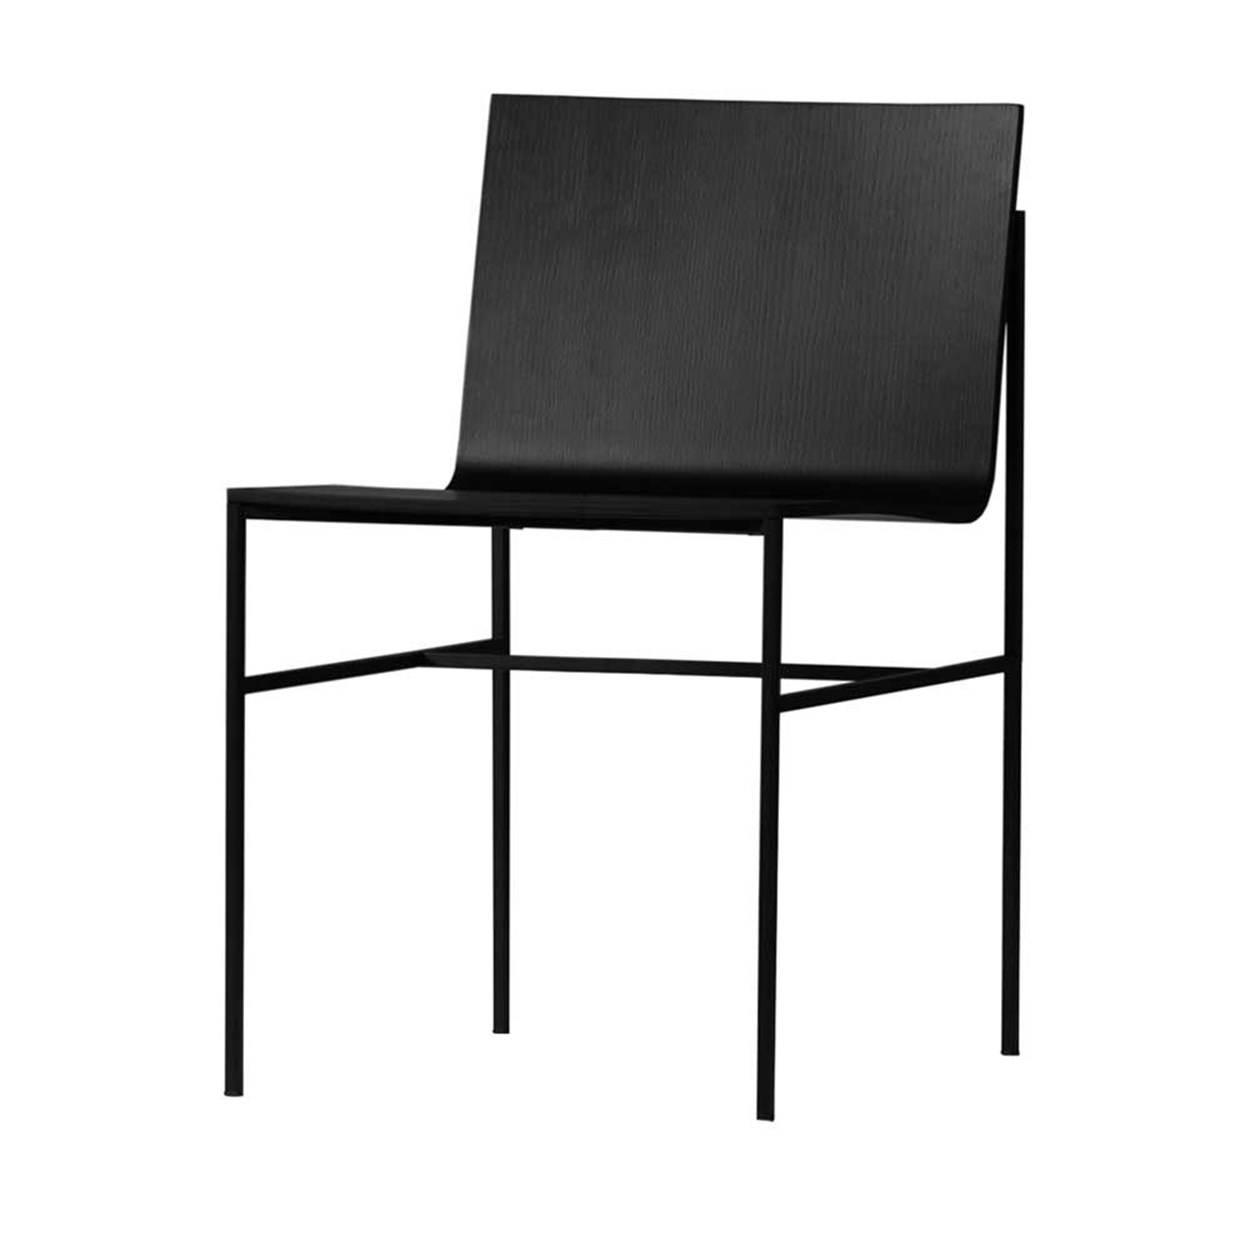 capdell-a-collection-chair-03.jpg